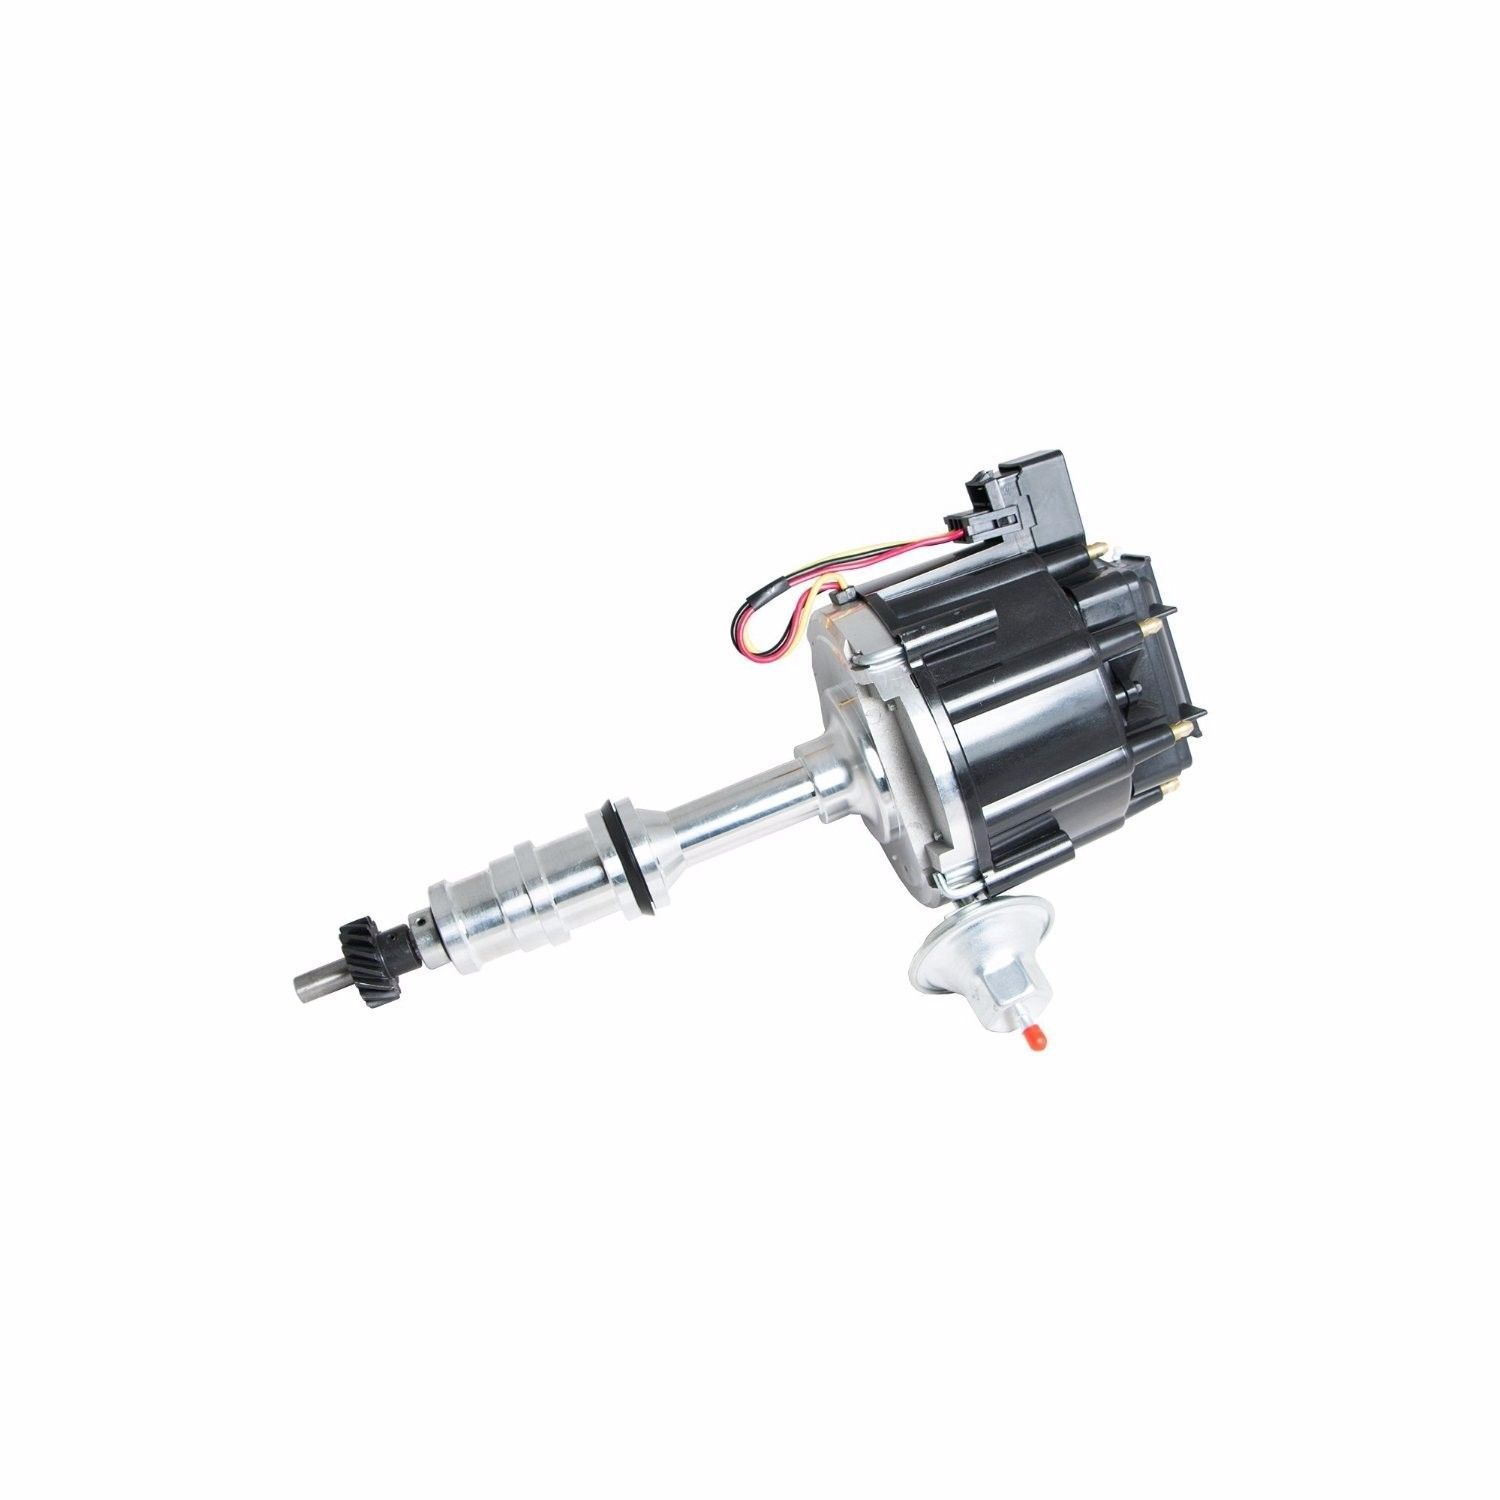 ford hei ignition electric baseboard heater wiring diagram fe 352 360 390 427 428 distributor 65k volt coil